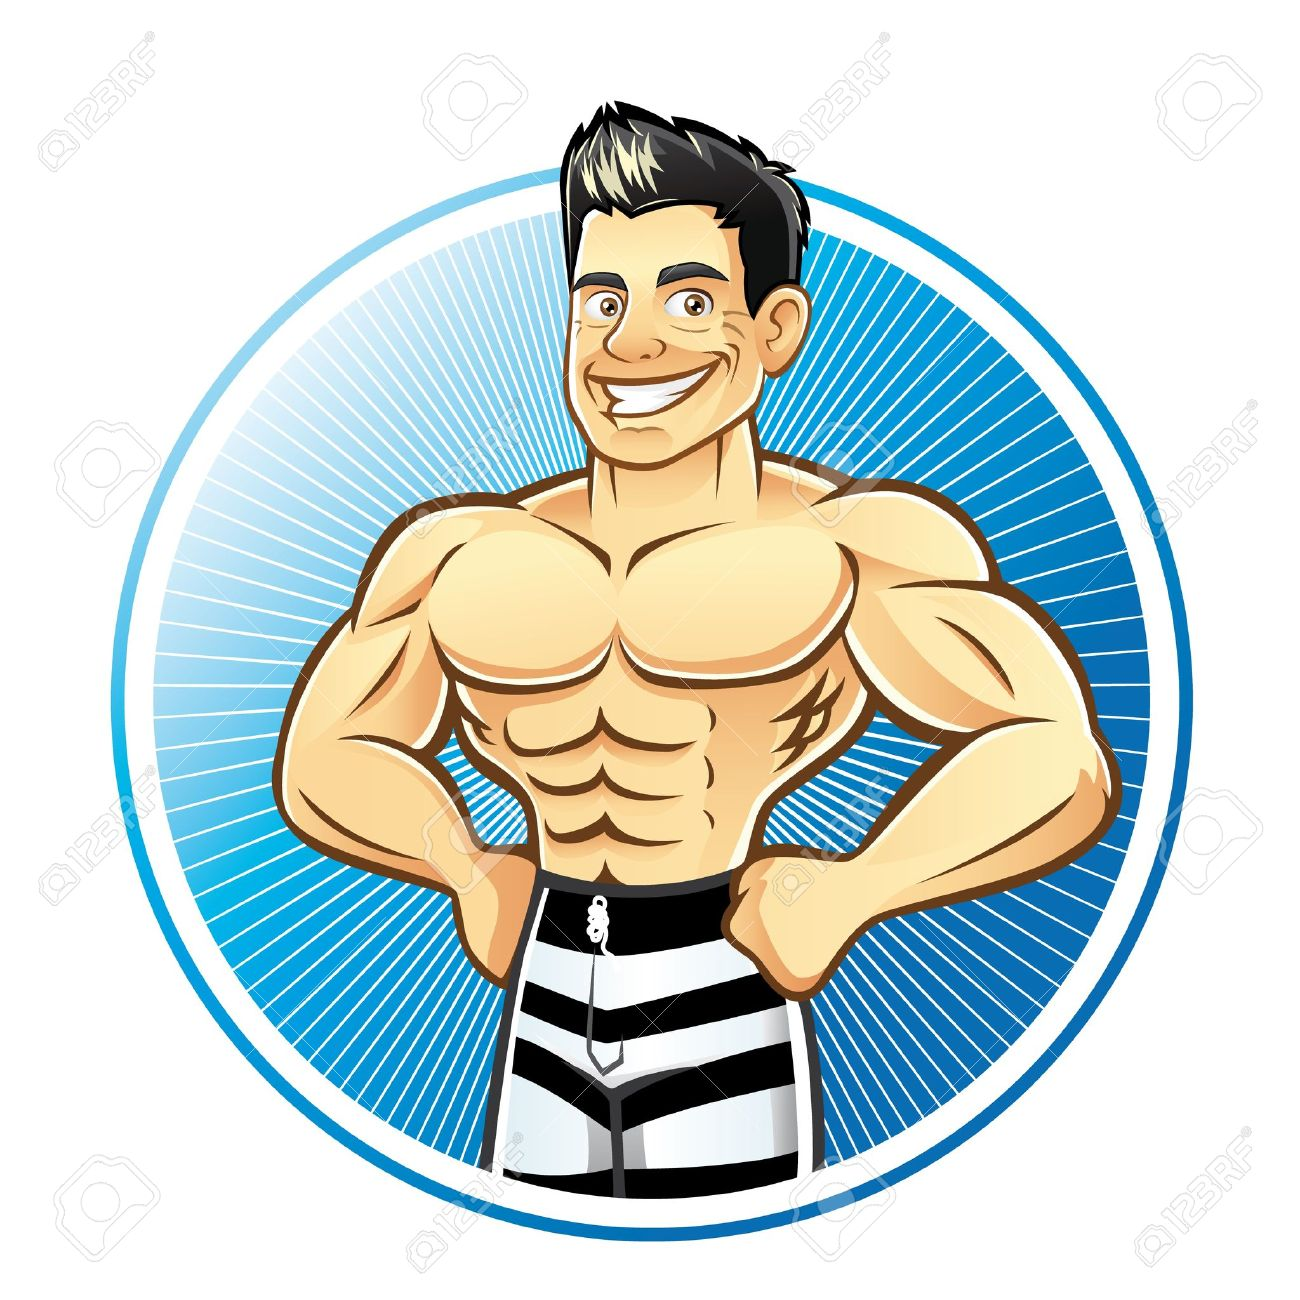 Muscle Man Cartoons Group with 20+ items.